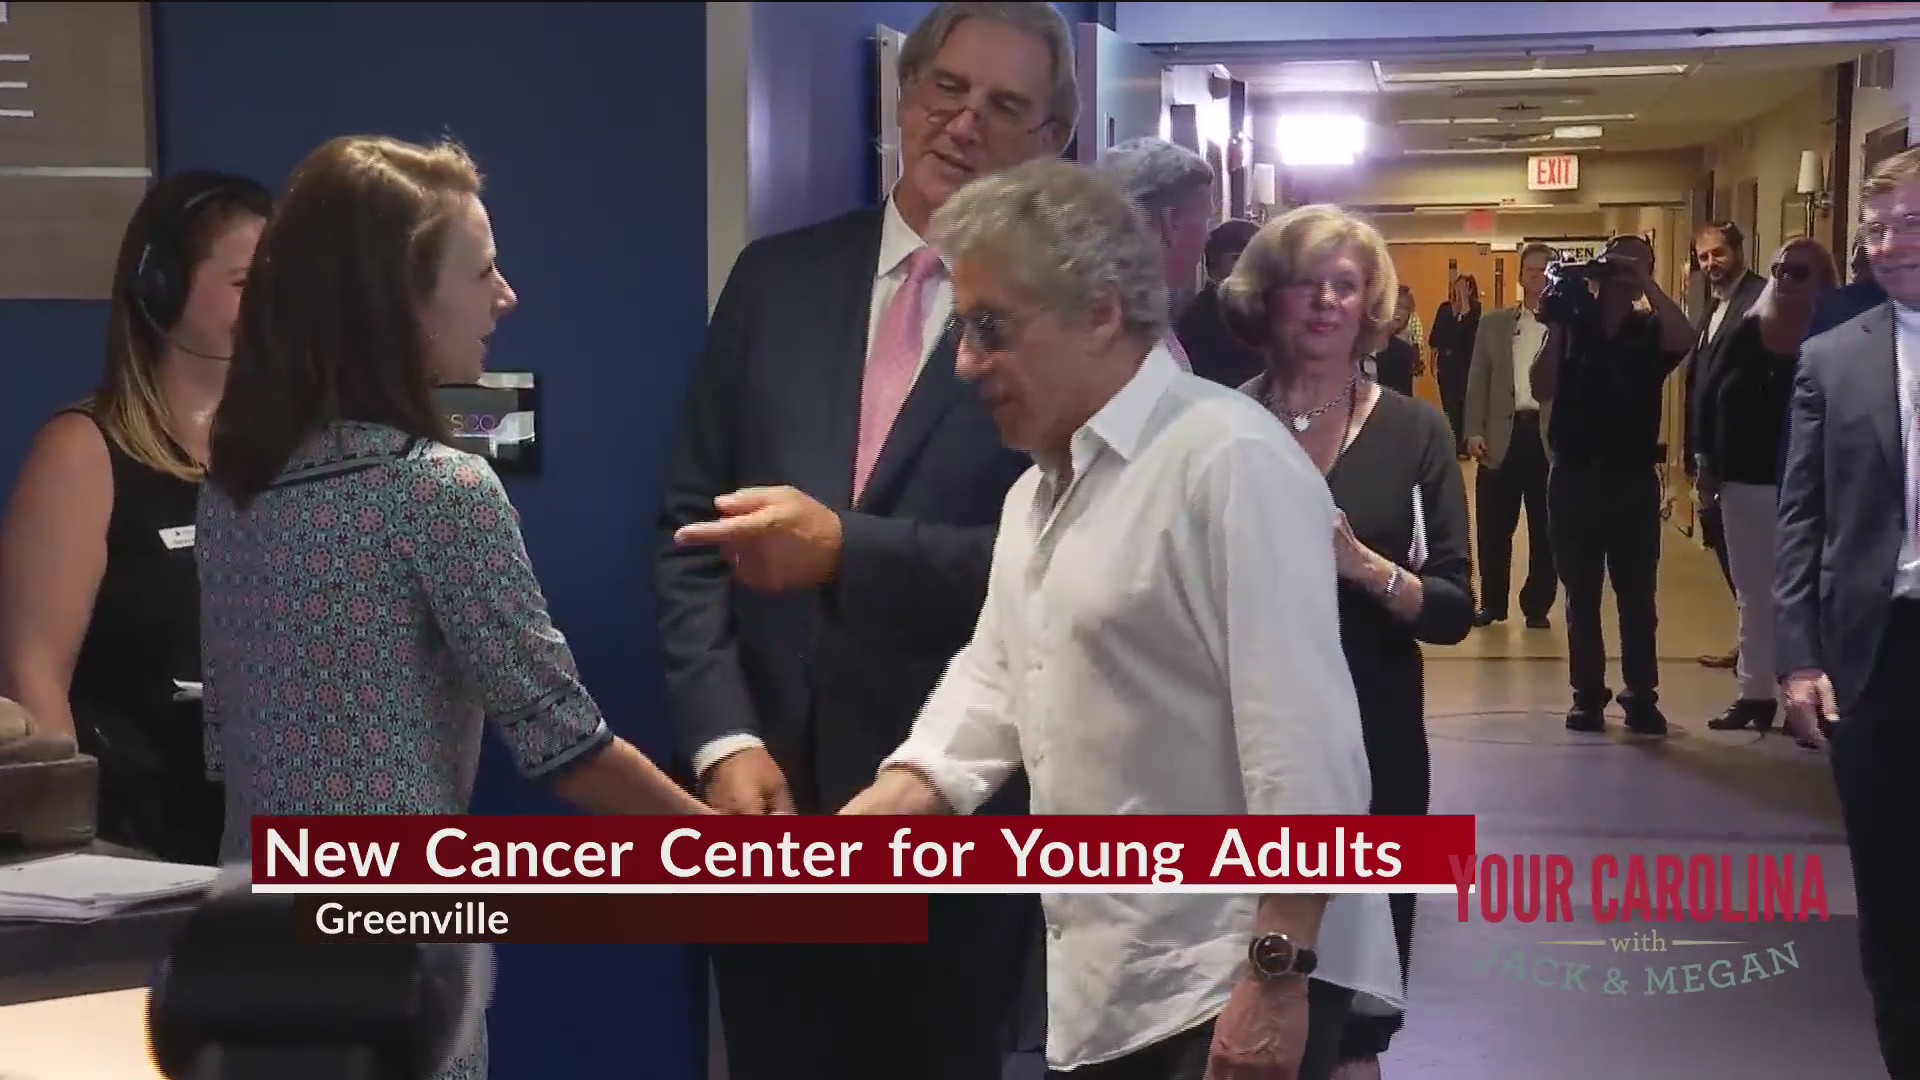 Good News - Roger Daltrey Visits New Cancer Center For Young Adults In Greenville